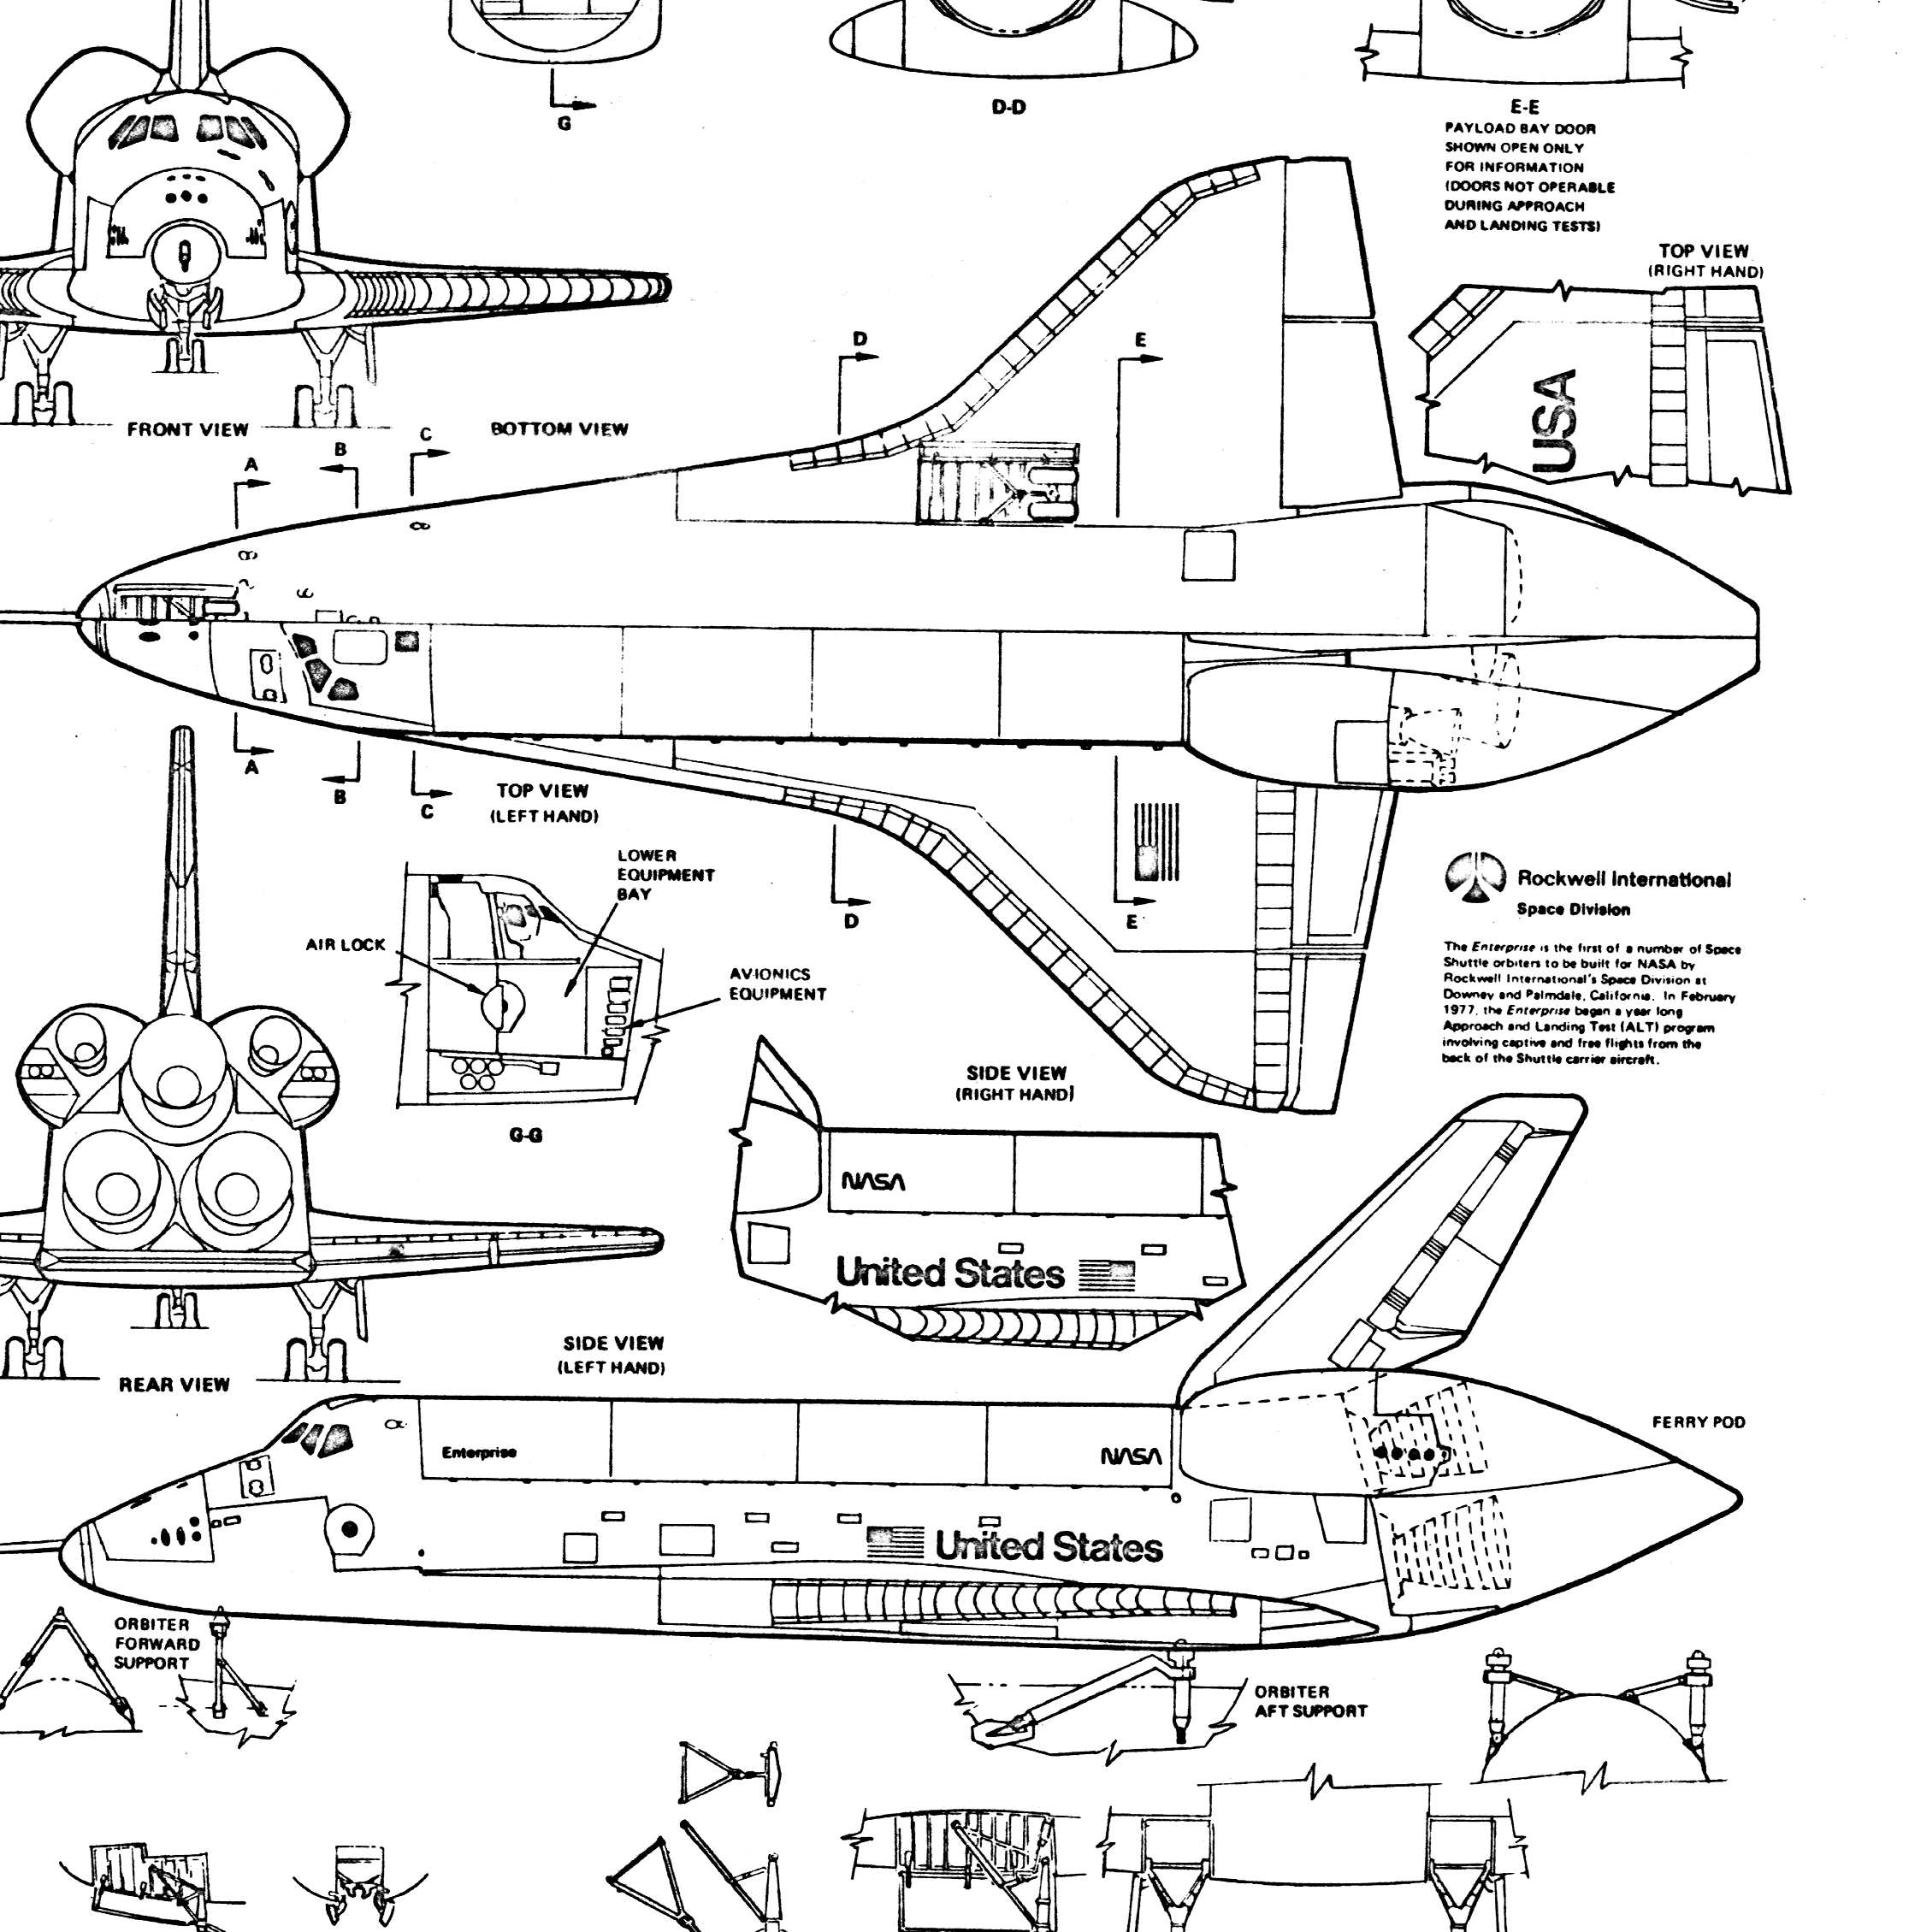 Orbiter Space Shuttle Blueprints